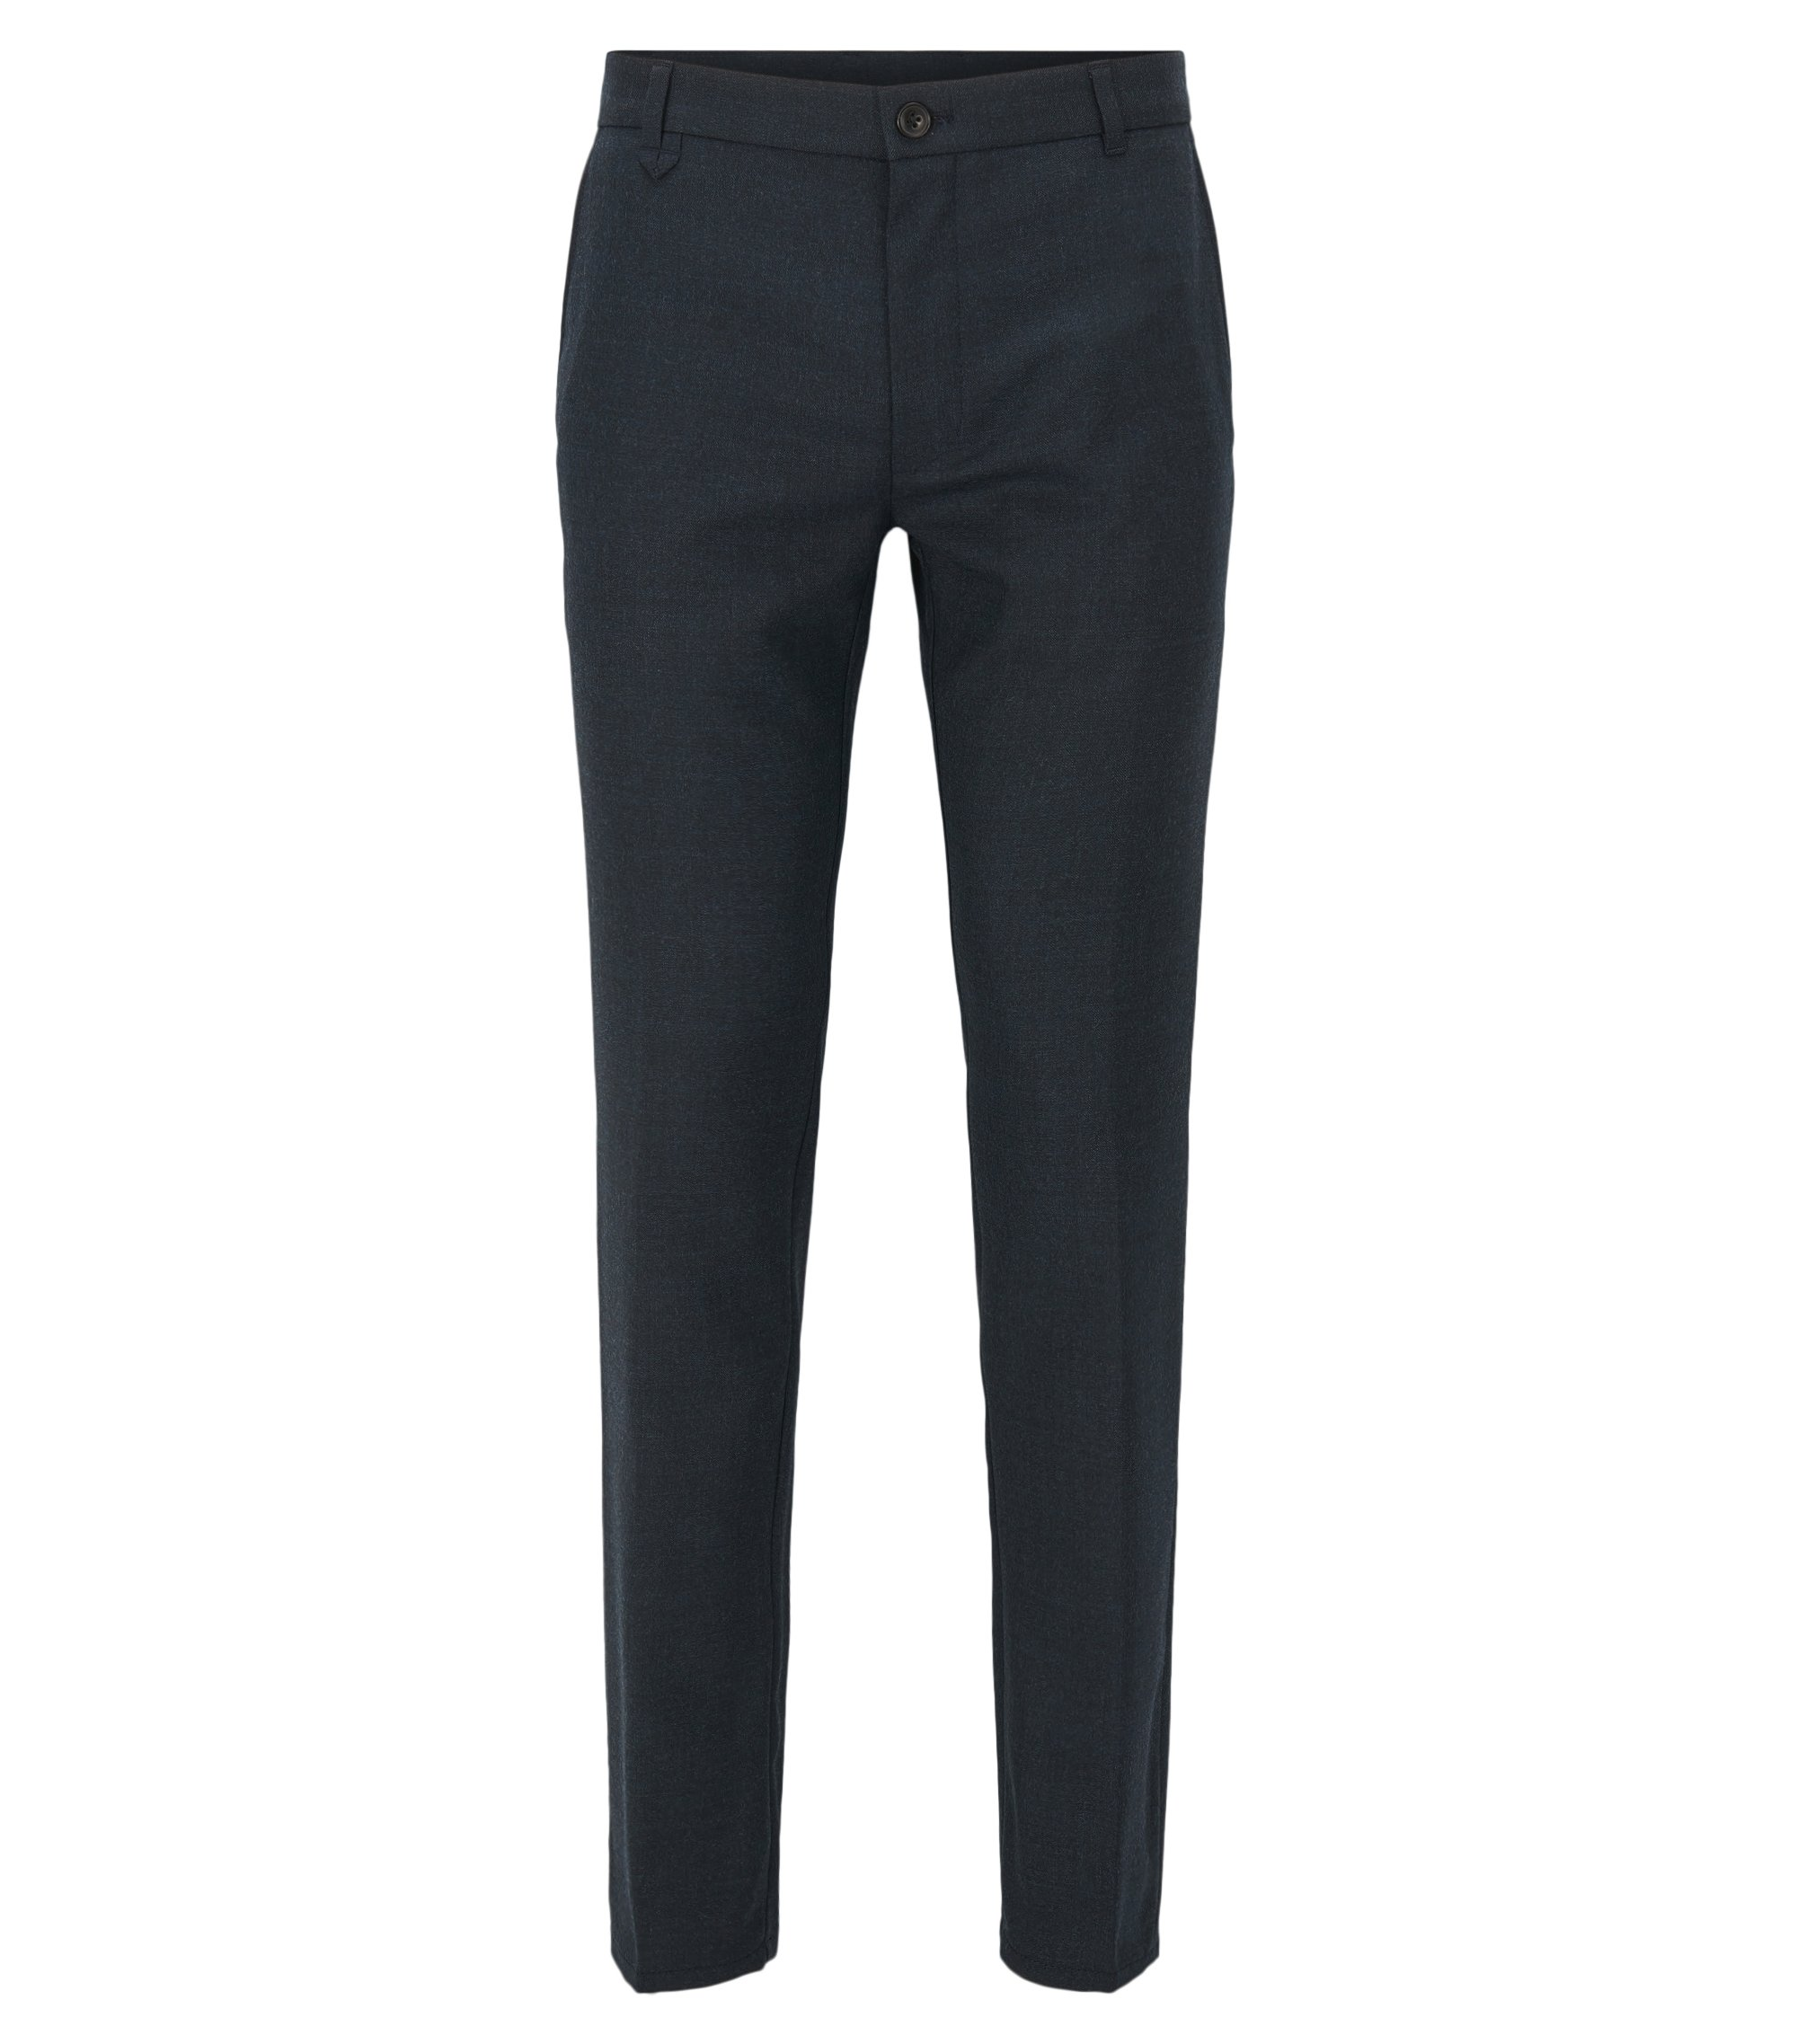 Stretch Virgin Wool Pants, Extra Slim Fit | Heldor, Dark Blue